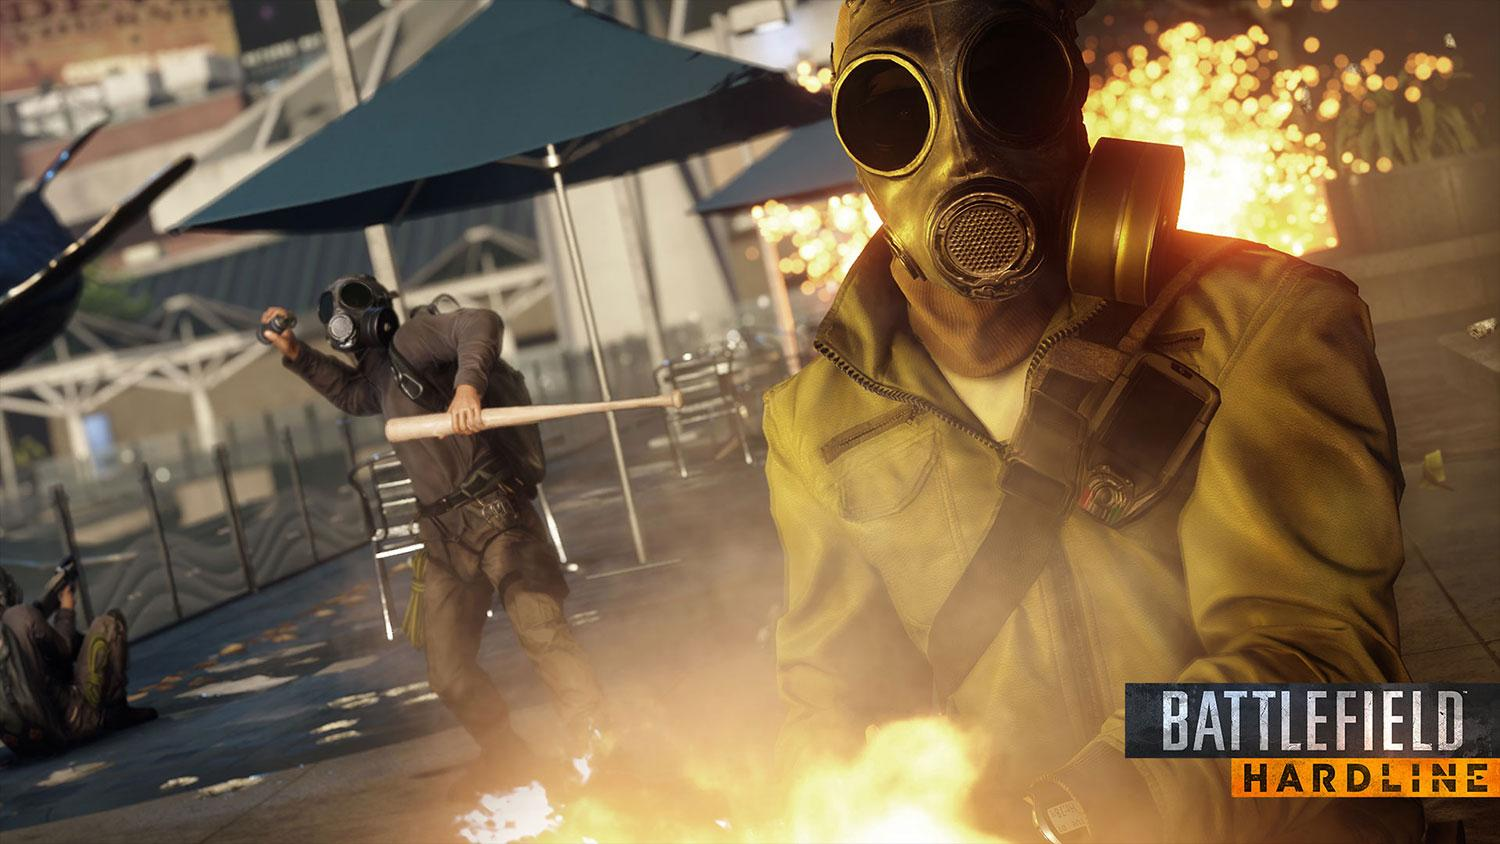 Battlefield-Hardline-interview_GasMasks1.jpg